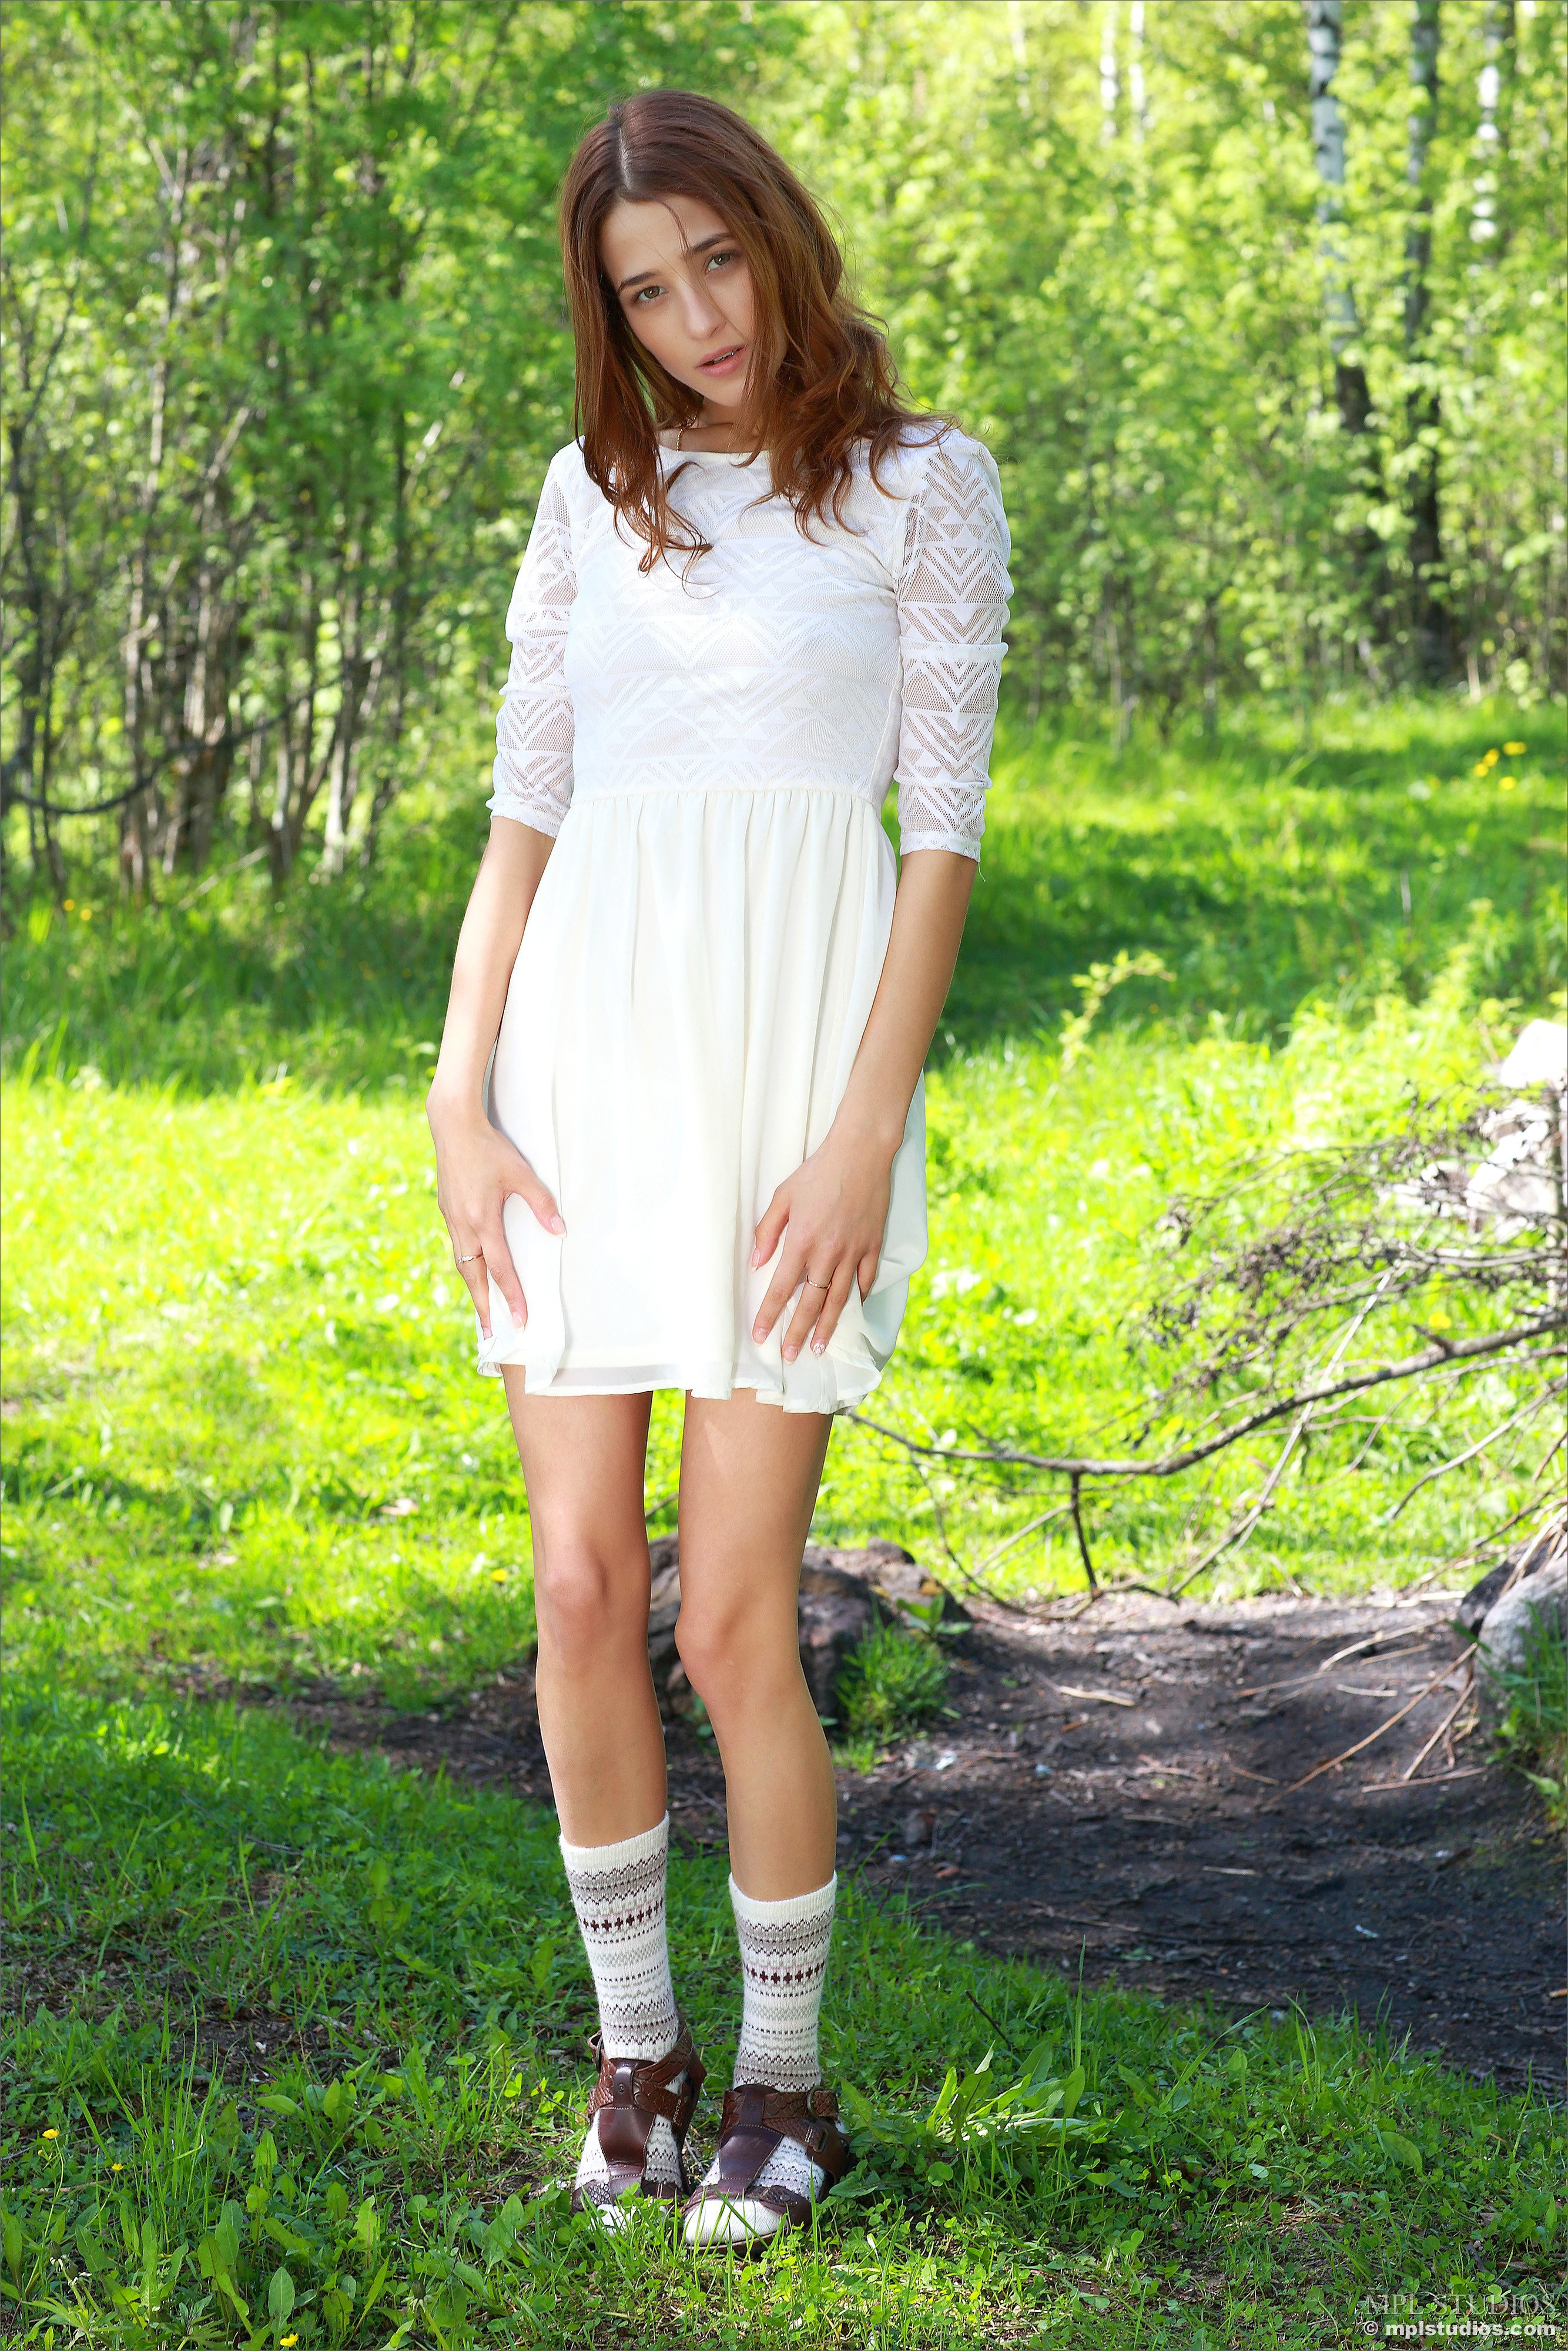 shaved-brunette-sasha-p-with-perky-tits-from-mpl-in-forest-1.jpg